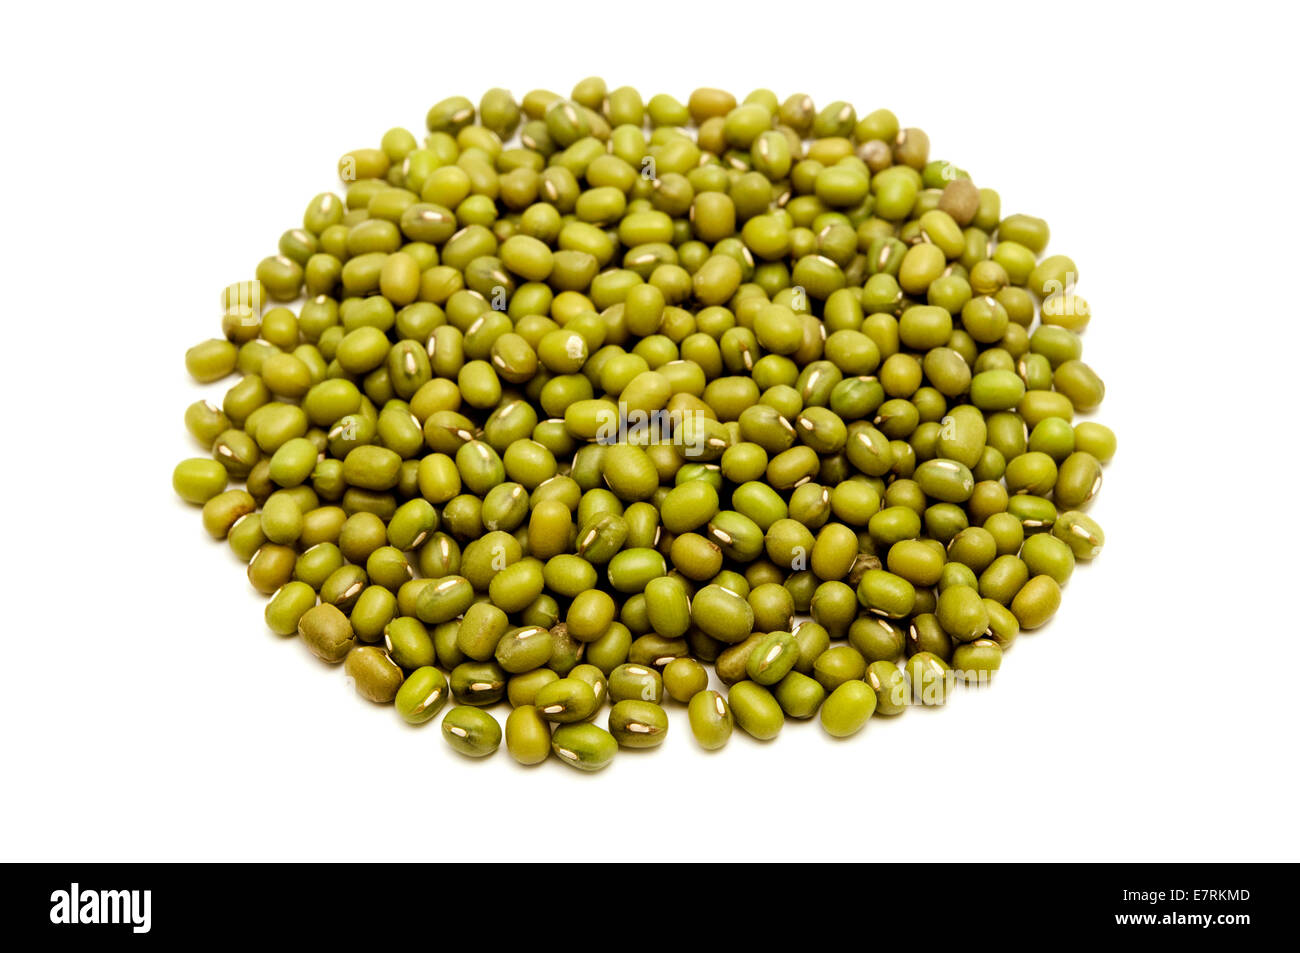 Mung beans on a white background - Stock Image